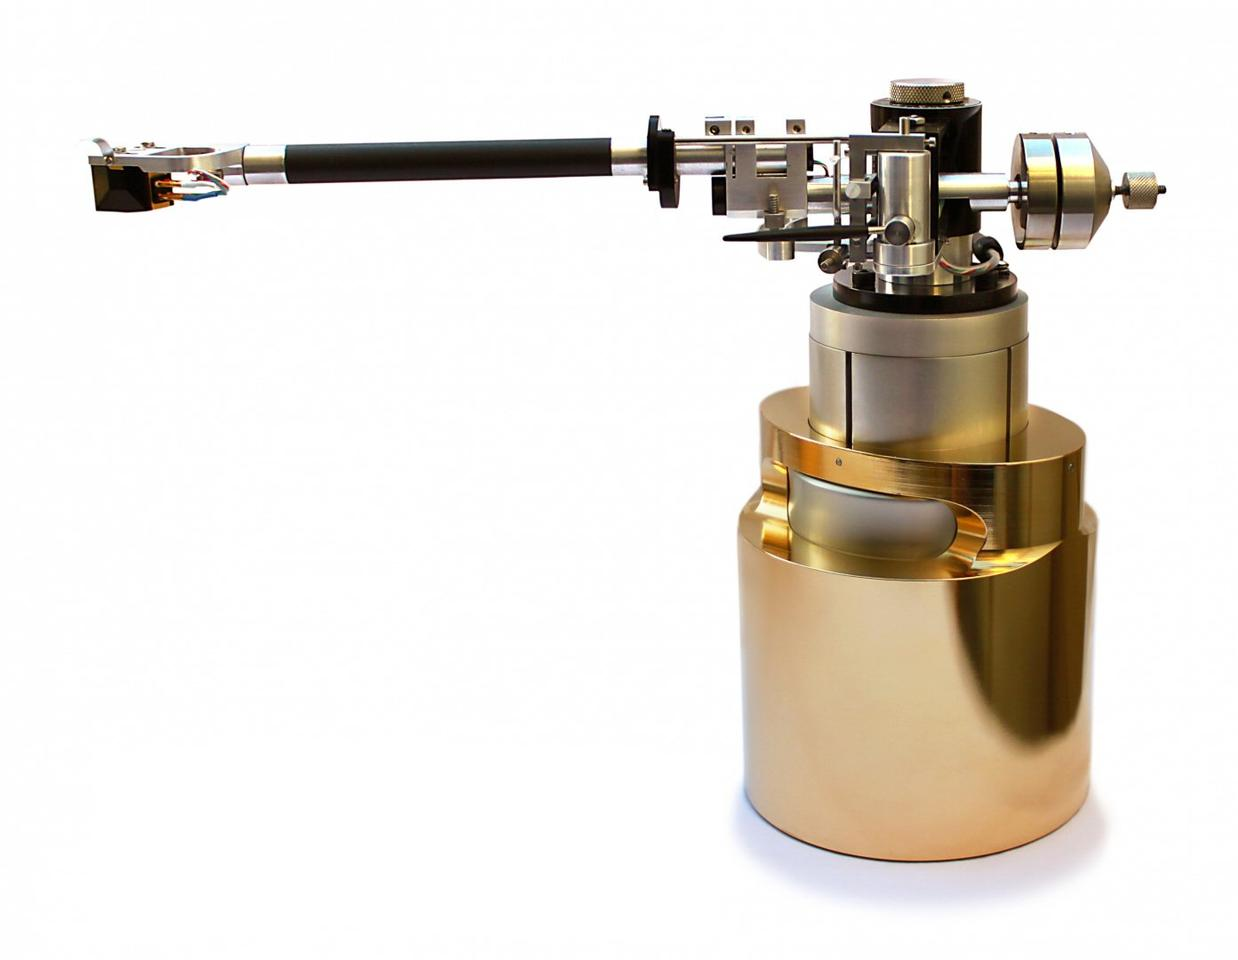 The system's tonearm tower will work with any tonearm/cartridge combination - shown here with a Tri-Planar Tonearm and Benz Micro LP cartridge (Photo: Onedof)